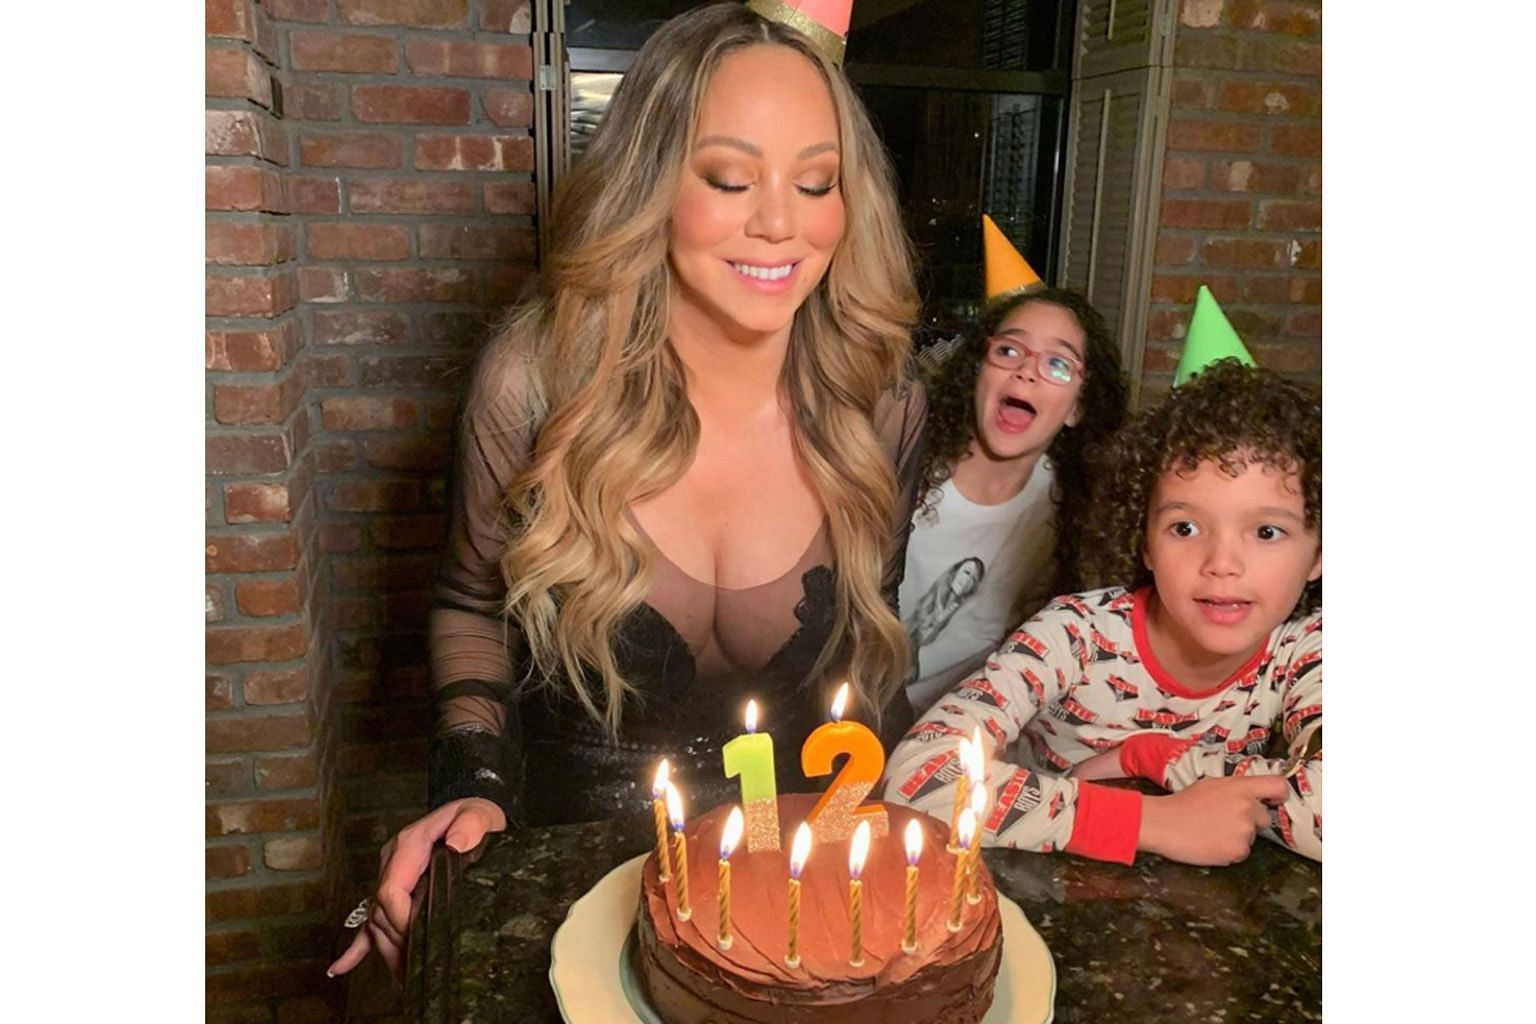 """ETERNALLY 12"": American singer Mariah Carey may have turned 50 last Friday, but she is still young at heart. The singer posted on Instagram a photo of herself with a birthday cake and her 8½-year-old twins standing behind her. It was captioned: ""Sp"